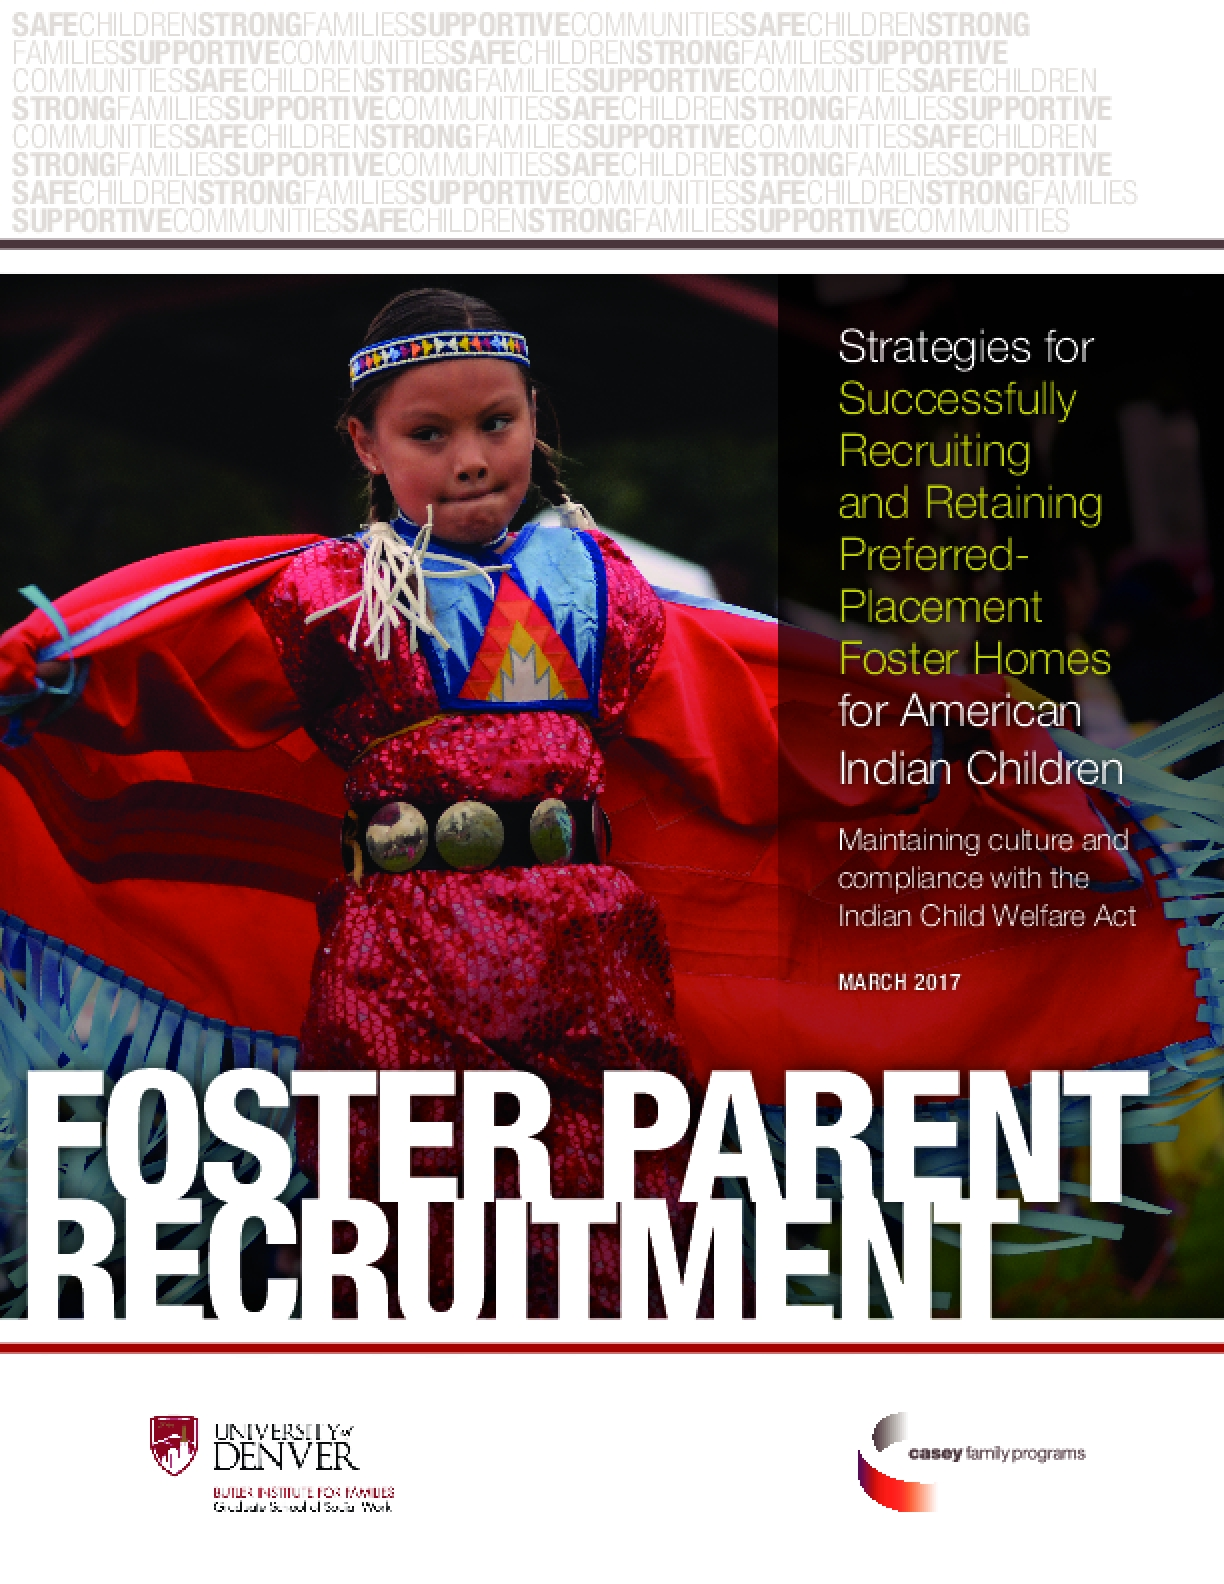 Strategies for Successfully Recruiting and Retaining Preferred-Placement Foster Homes for American Indian Children